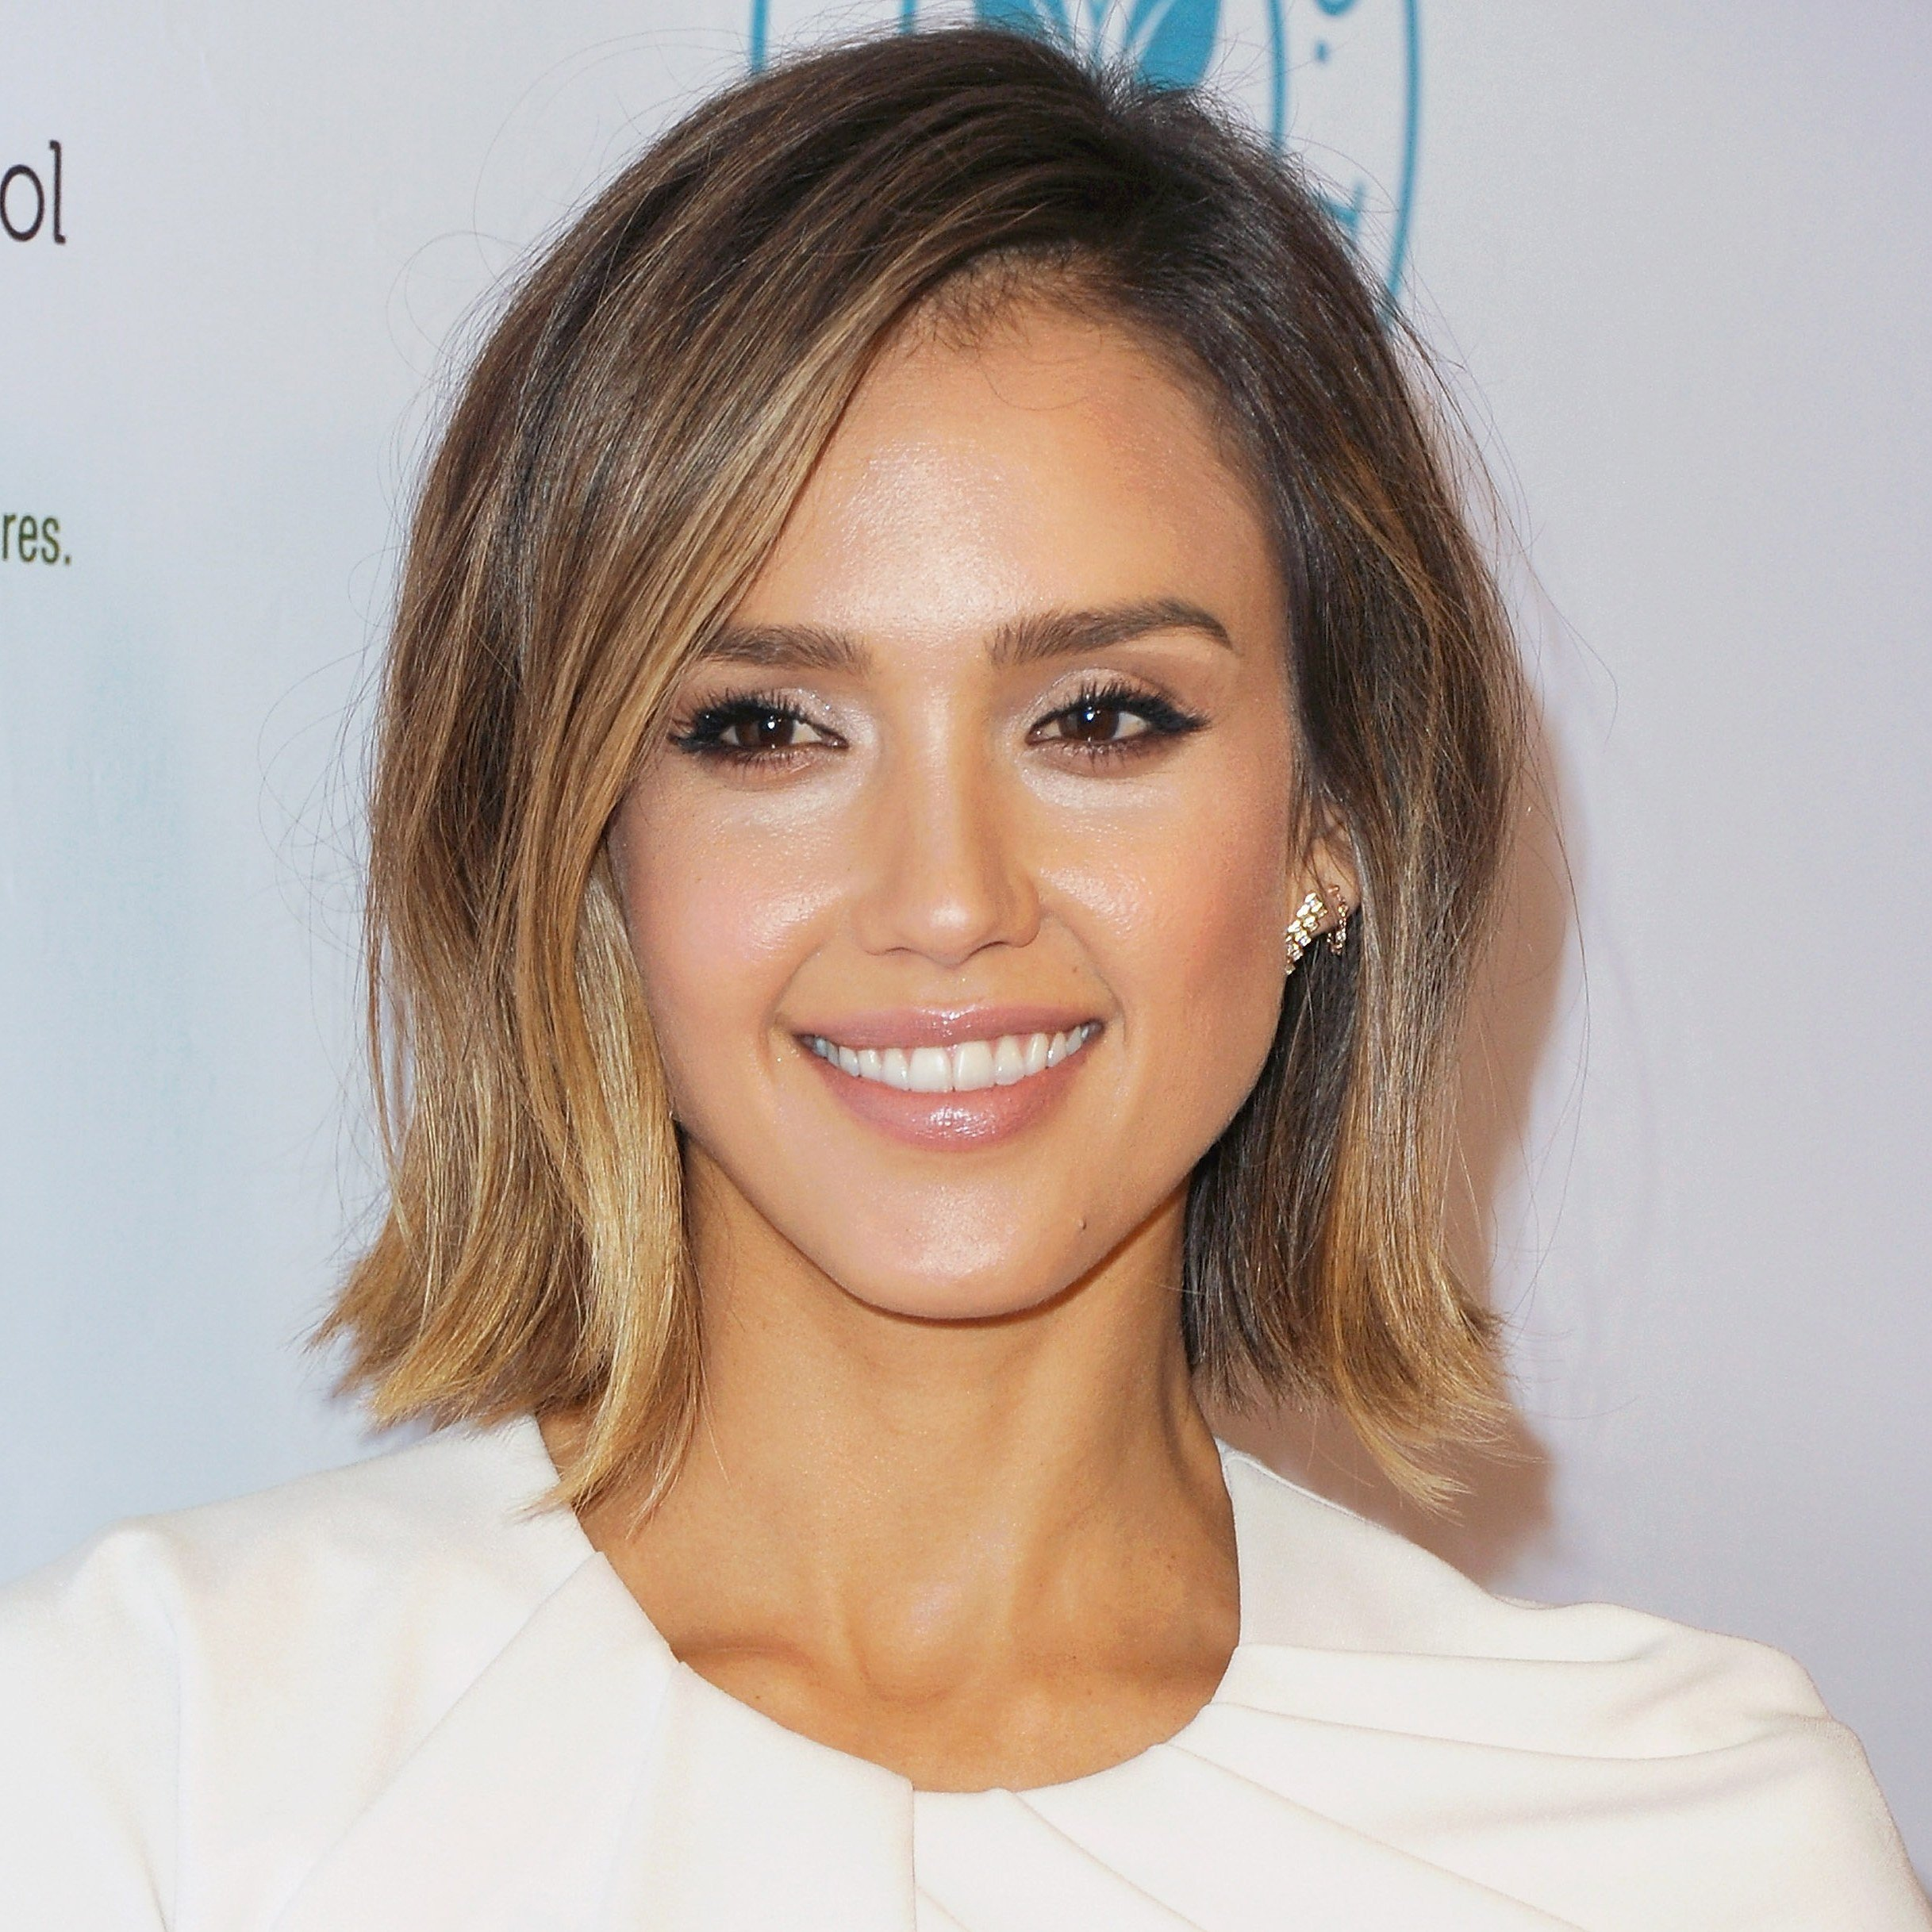 New 10 Hairstyles That Make You Look 10 Years Younger Allure Ideas With Pictures